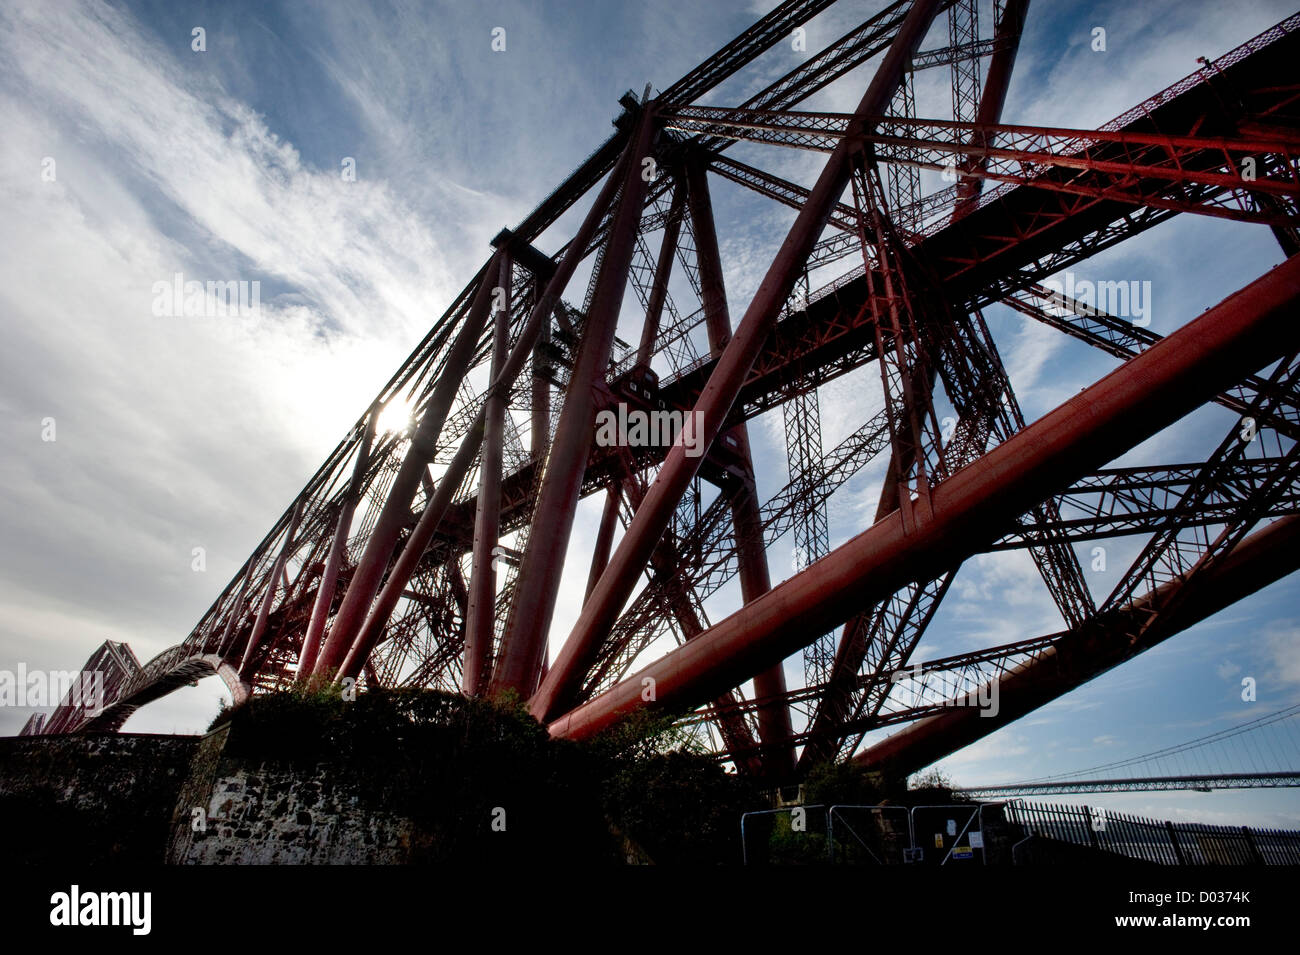 The Forth Railway Bridge pictured from the shore of he Firth of Forth at North Queensferry, Fife Scotland. Stock Photo